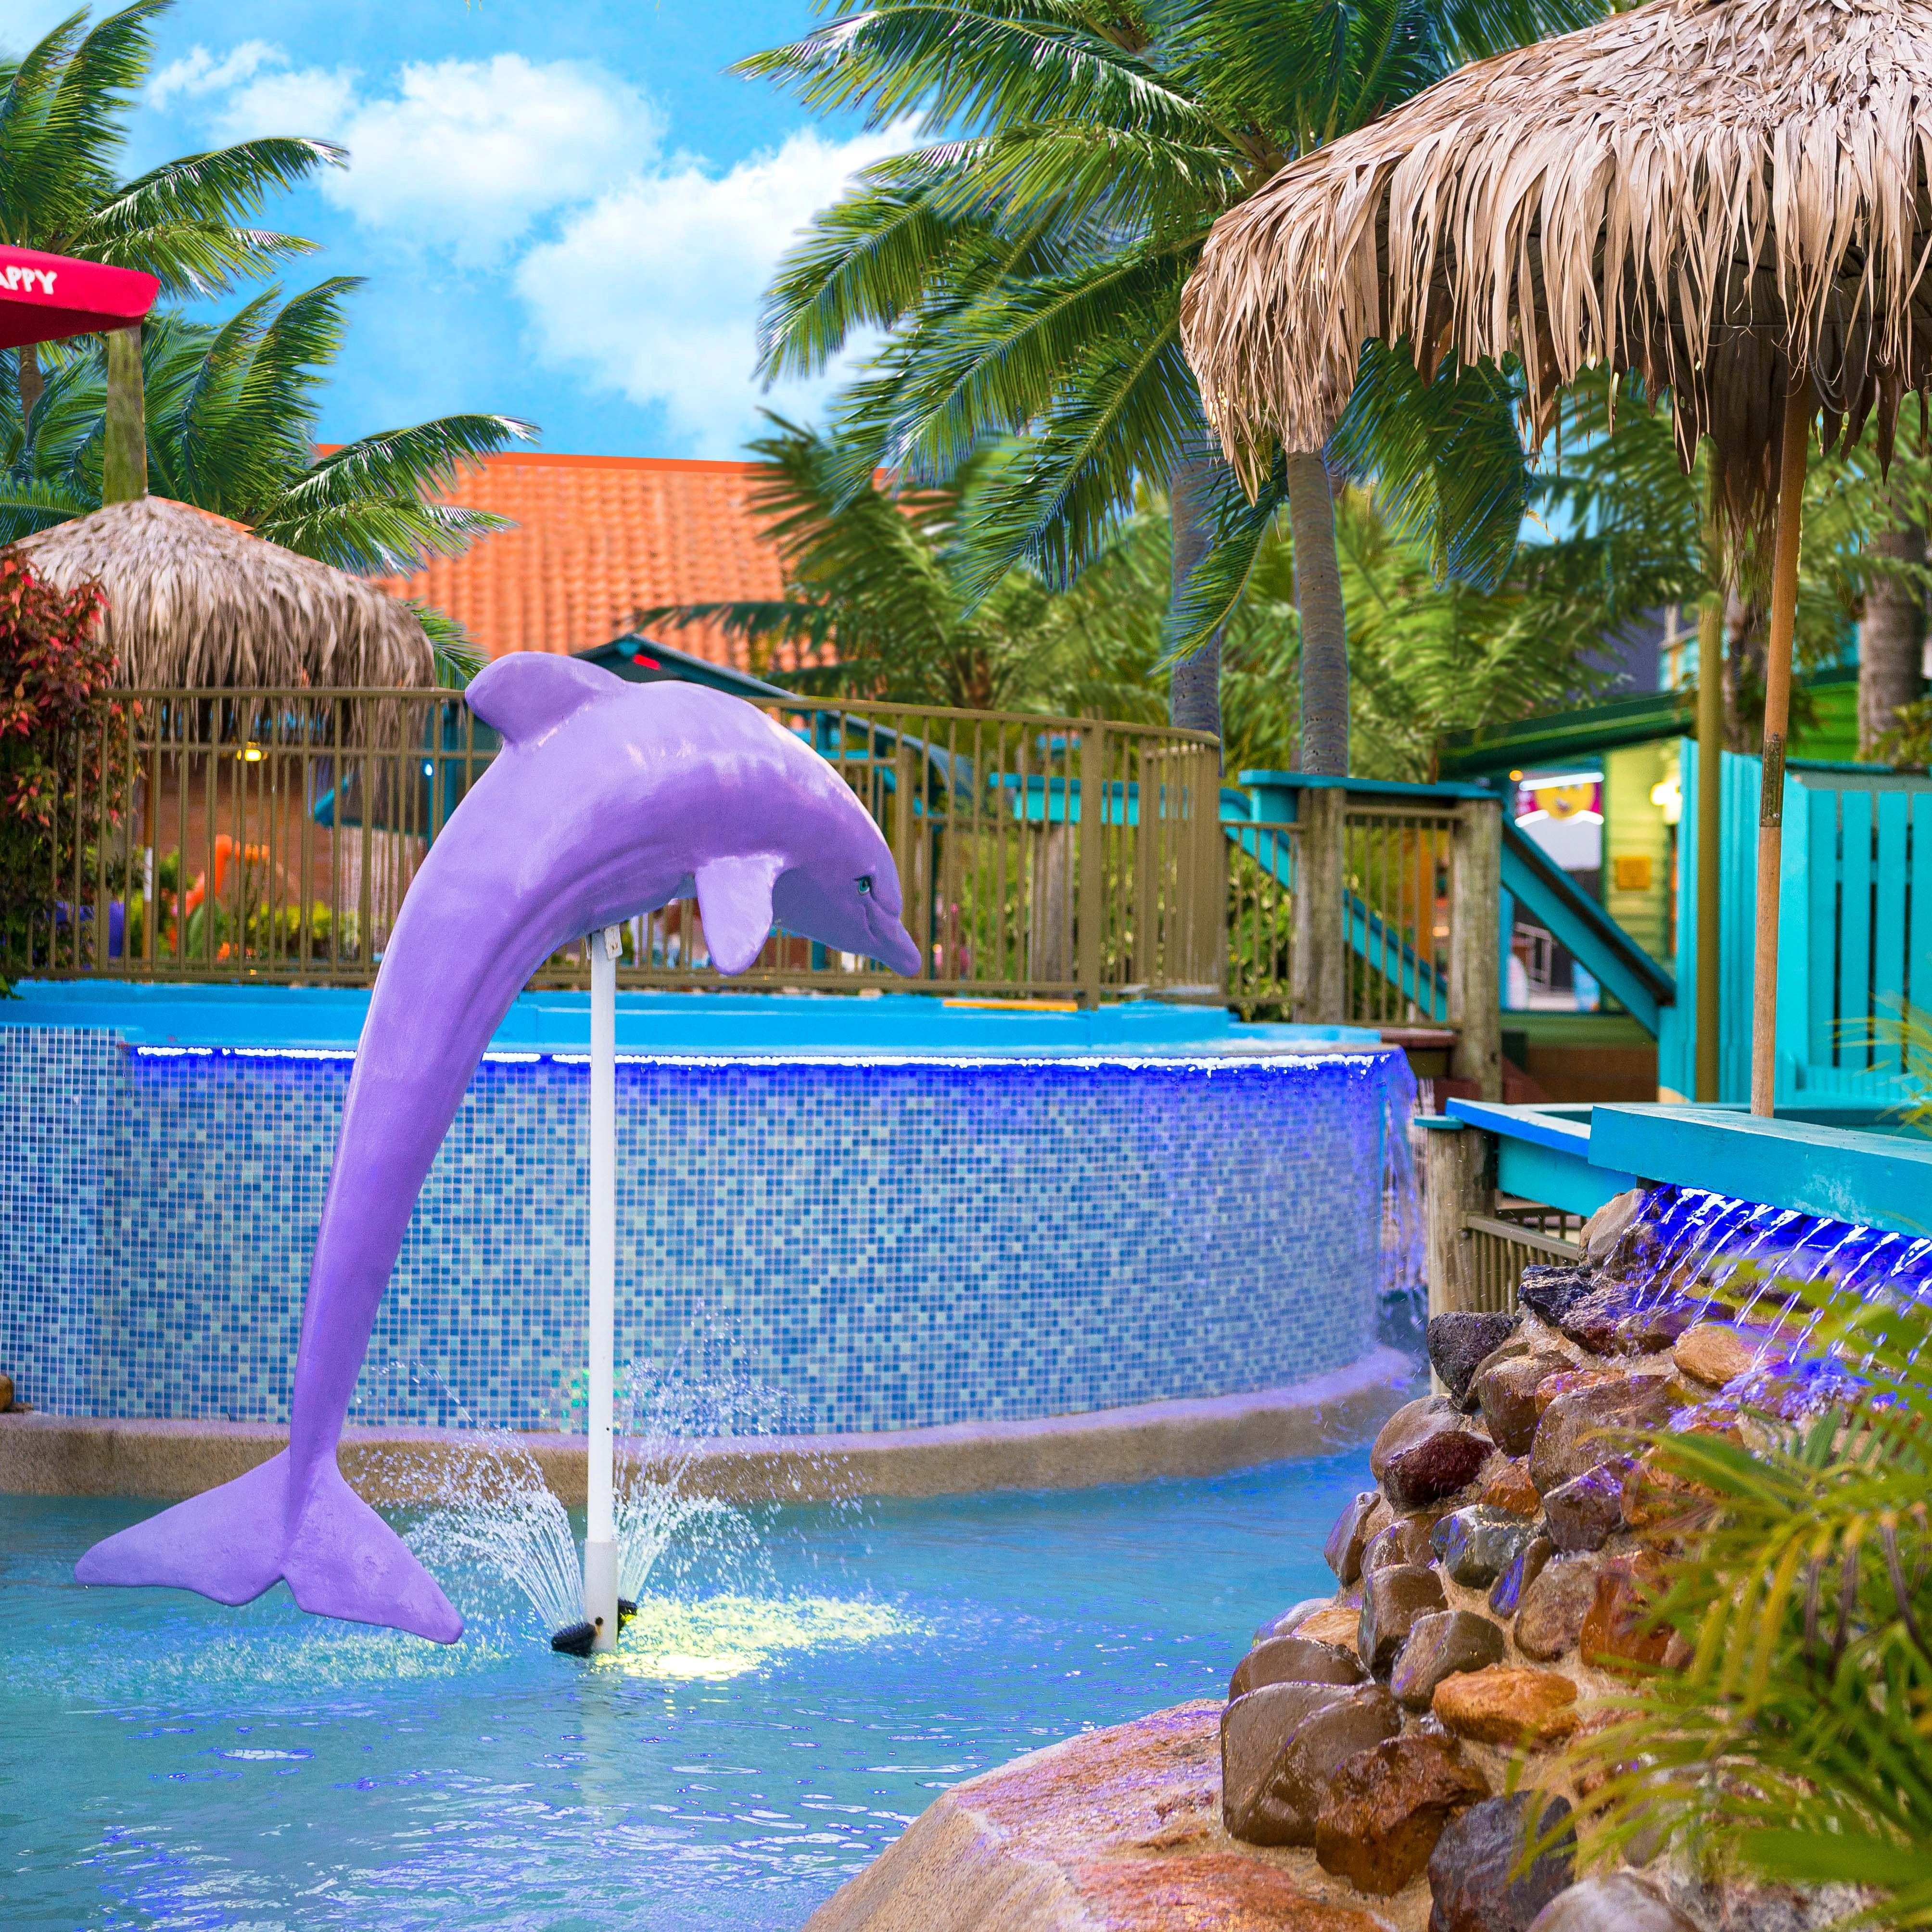 Putt Putt Golf Mermaid Beach - Waterways - Dolphin